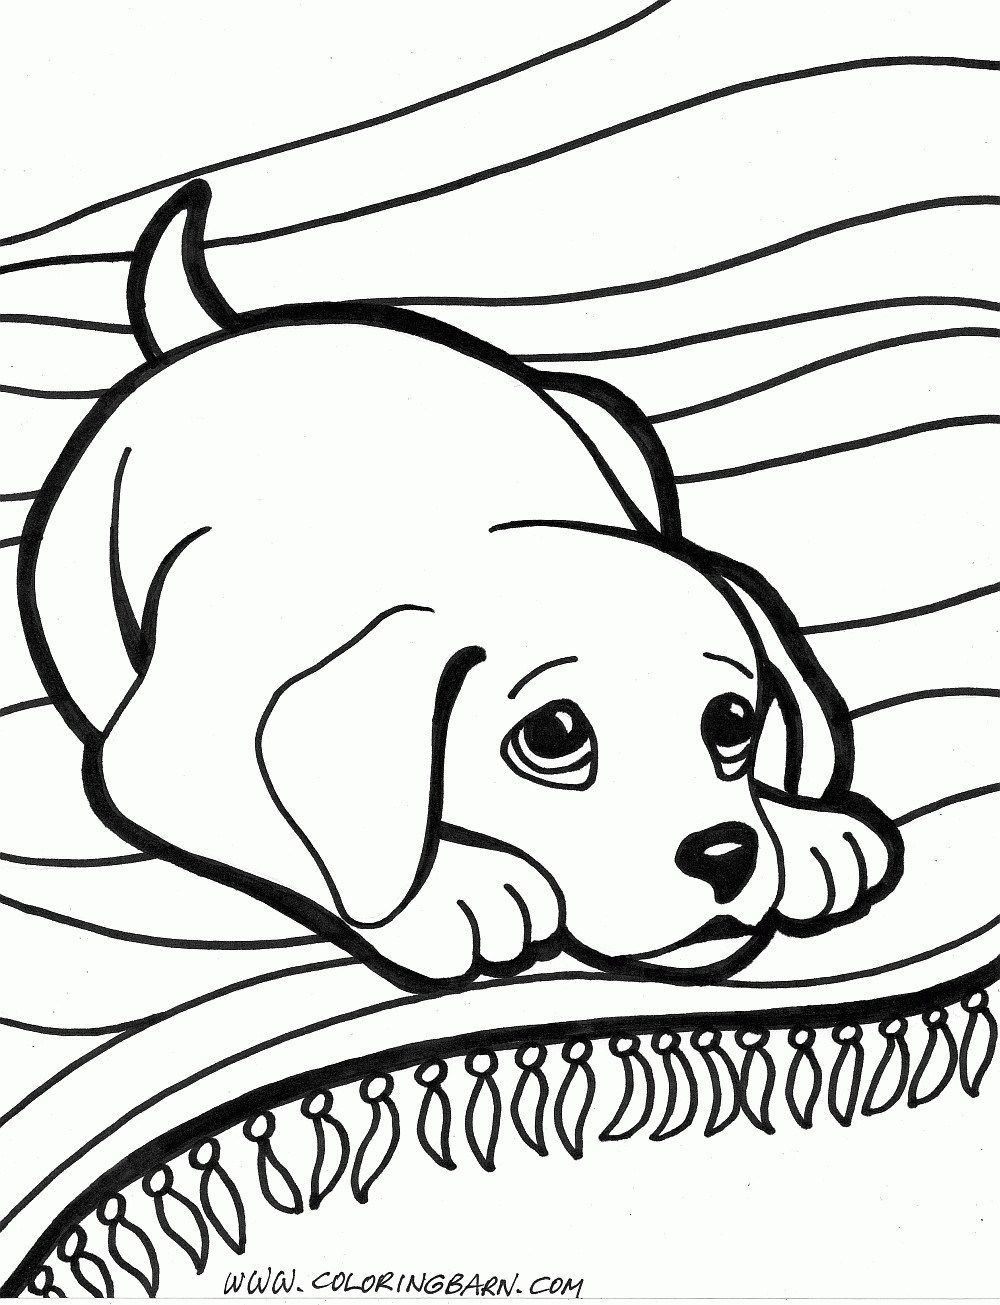 Puppy Coloring Pages Puppy Coloring Pages Dog Coloring Pages